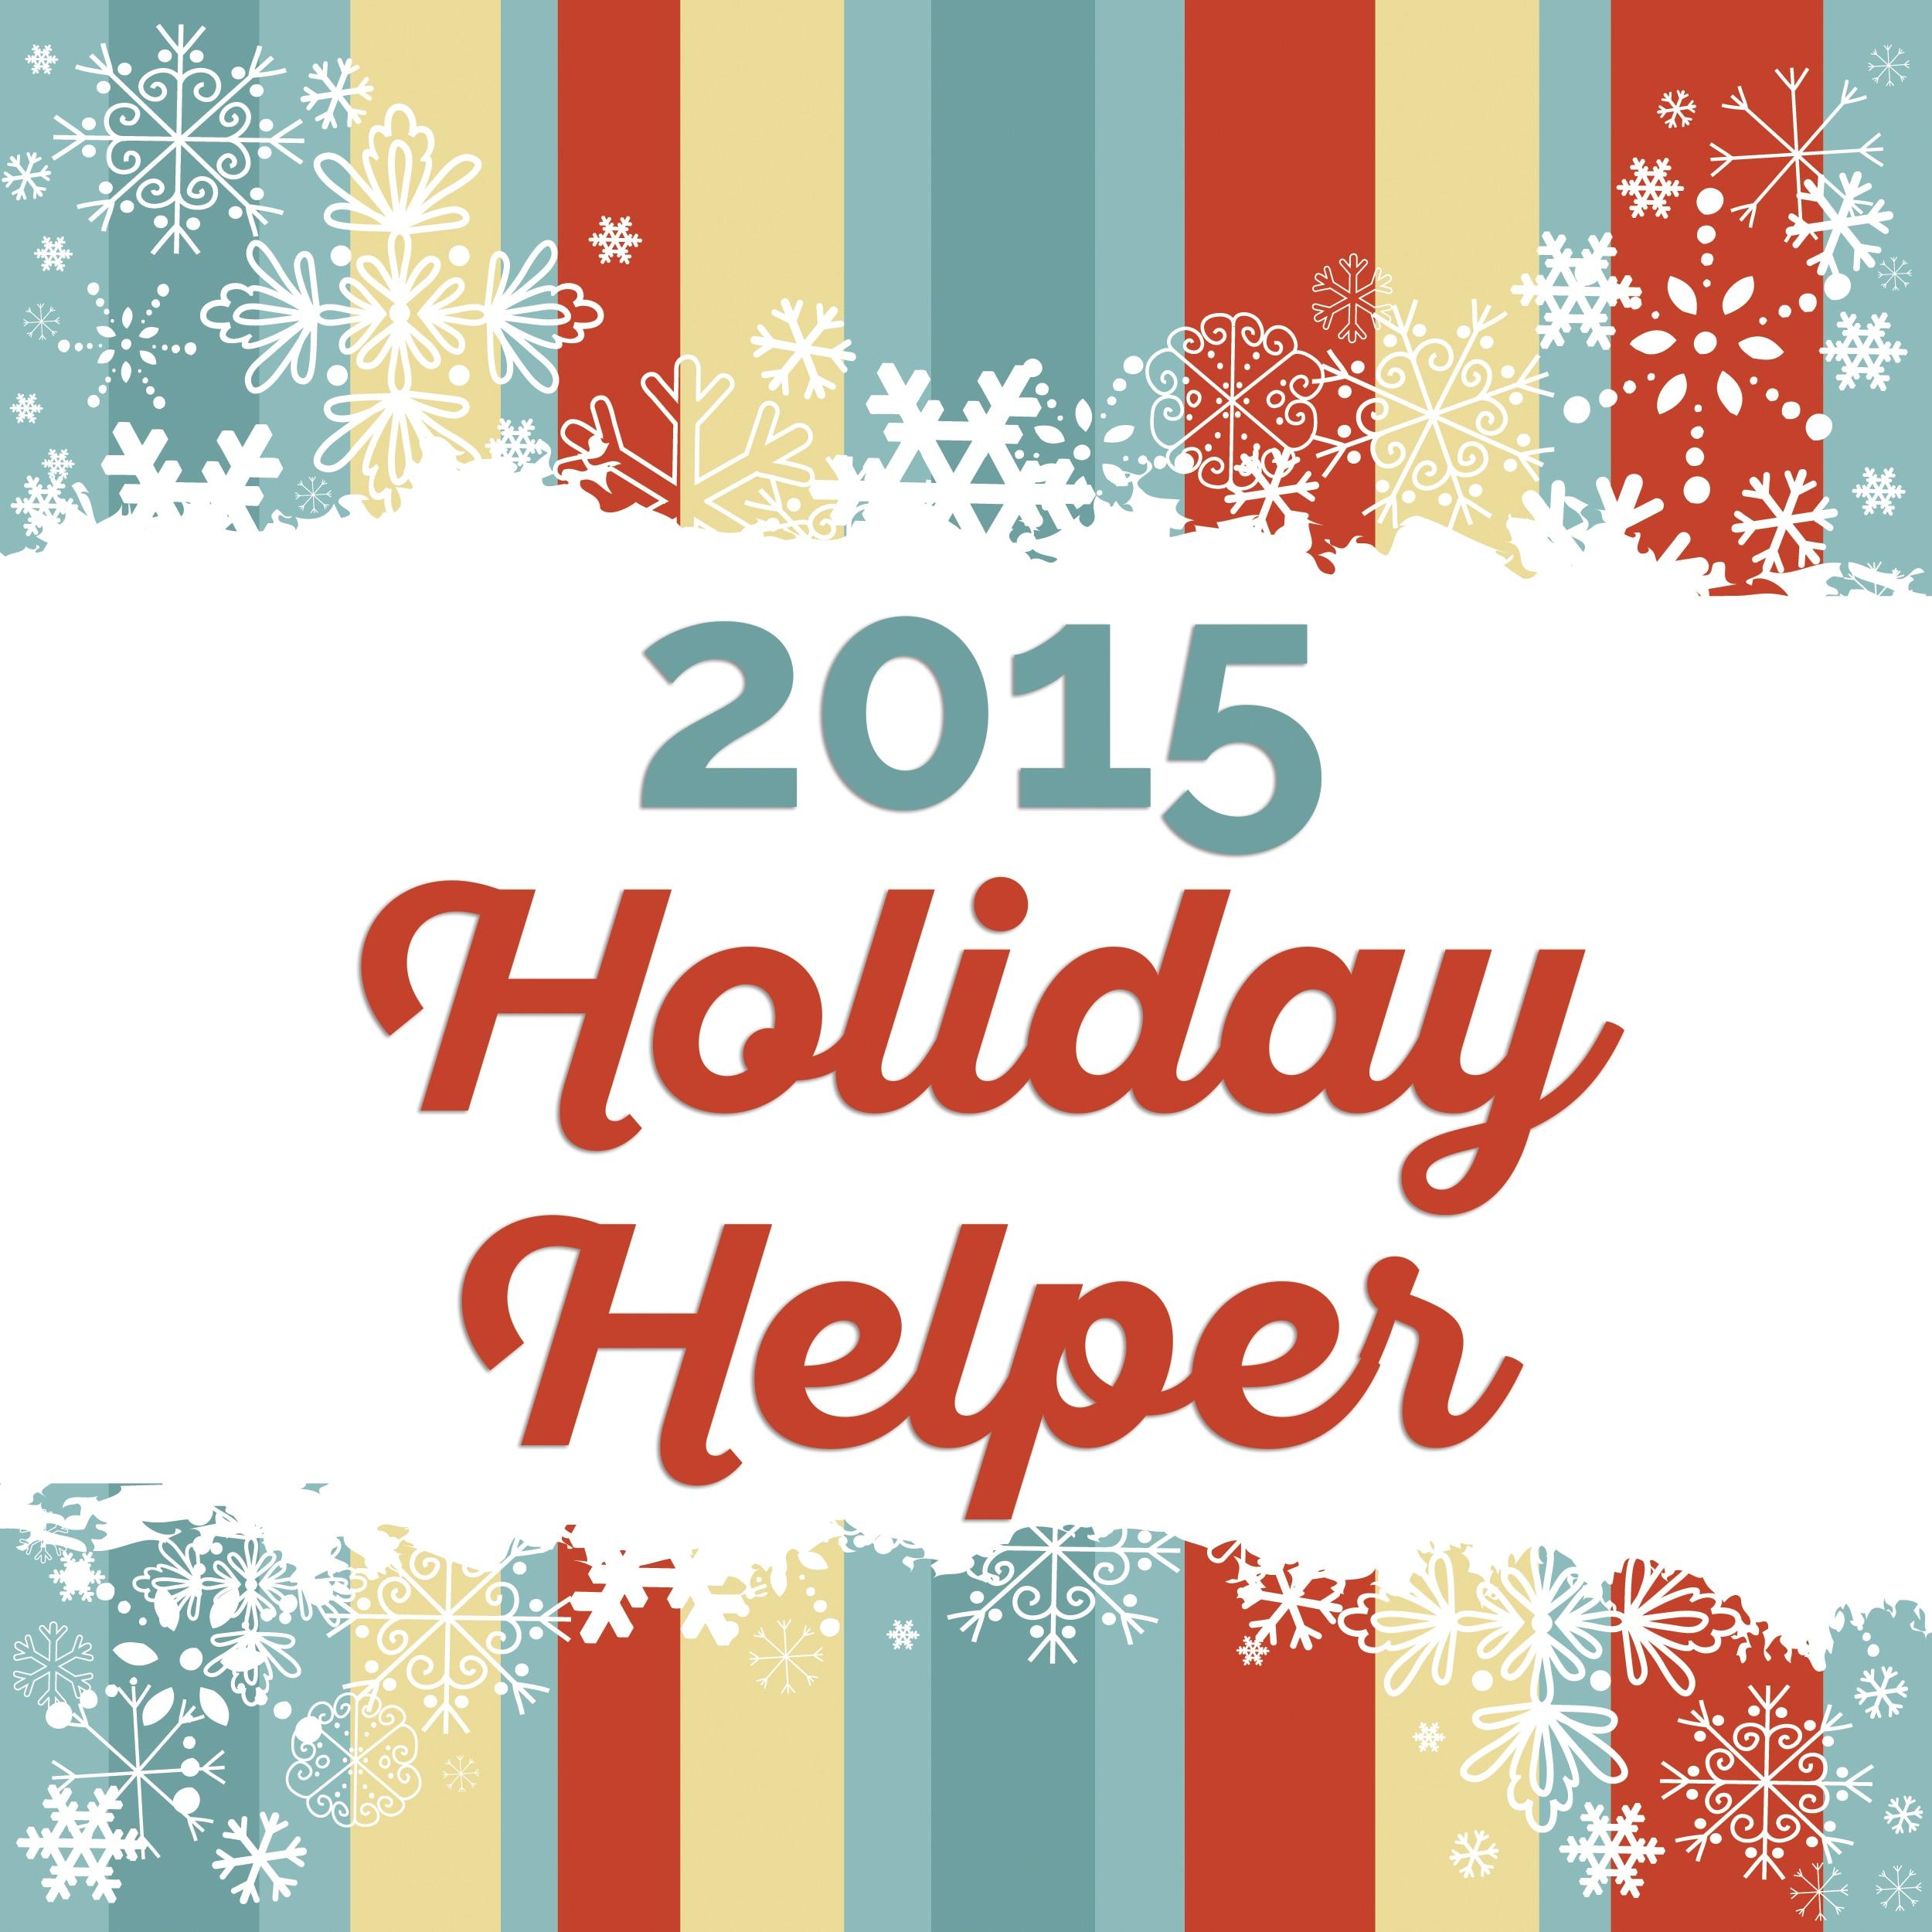 Holiday Helper: 12 Weeks of Prep, Saving Time, Saving Money | thegoodstuff